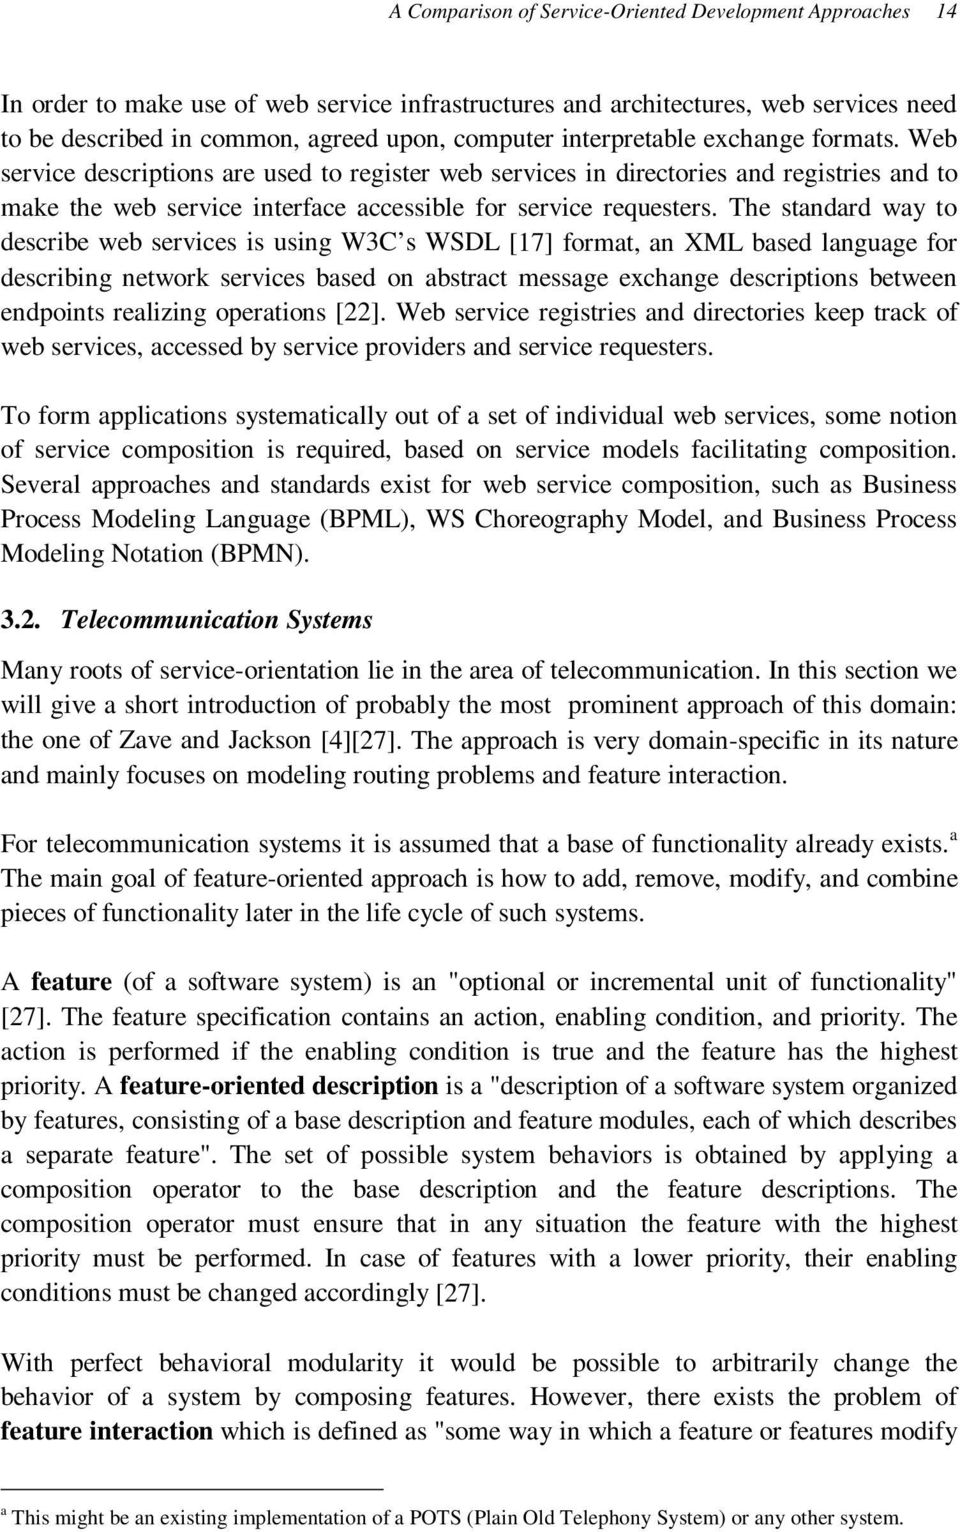 The standard way to describe web services is using W3C s WSDL [17] format, an XML based language for describing network services based on abstract message exchange descriptions between endpoints